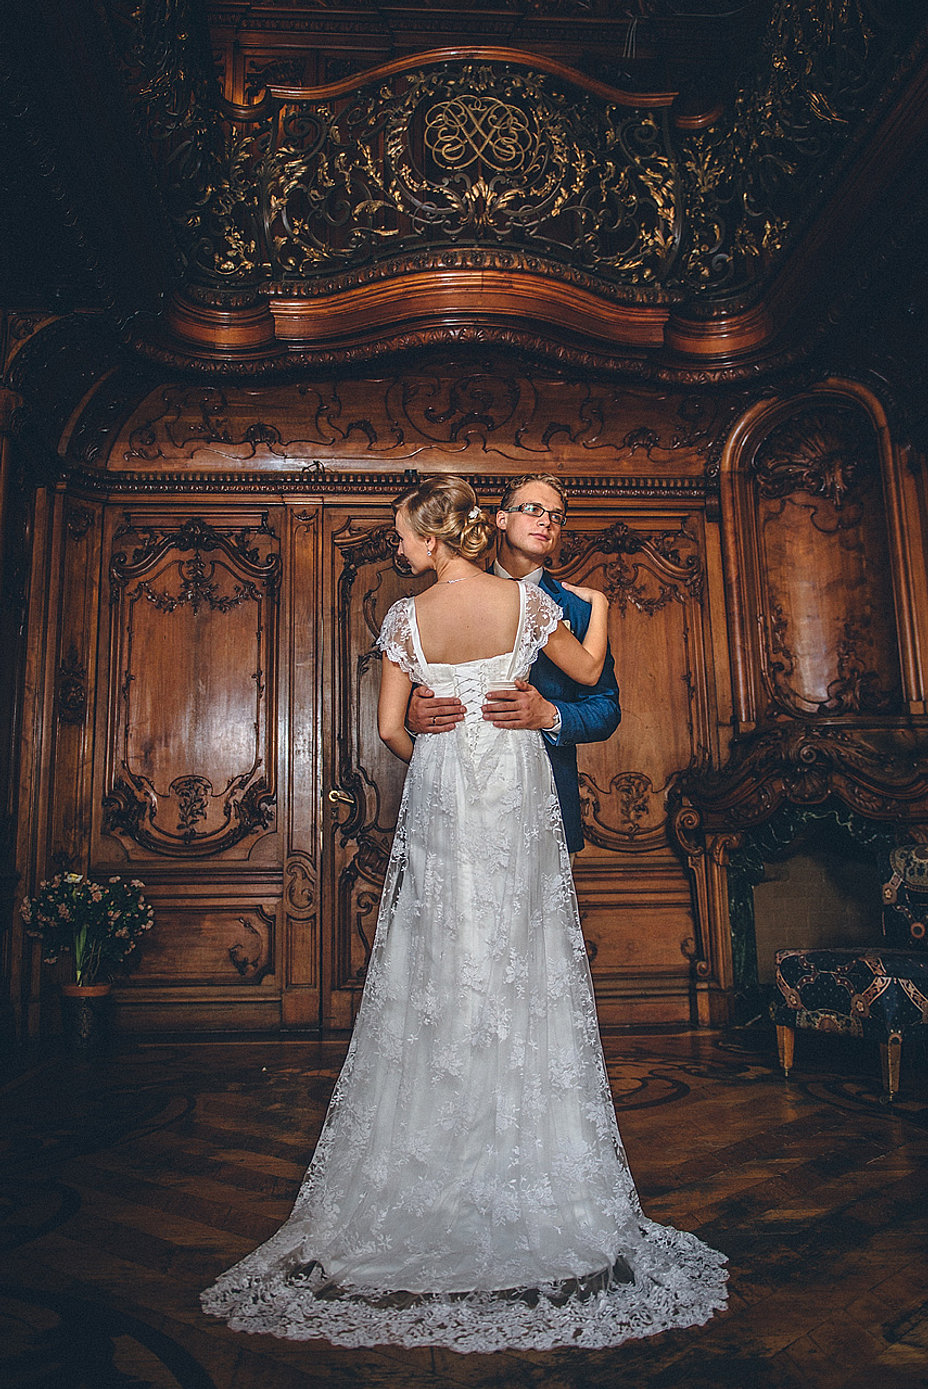 Calcutta berlin wedding